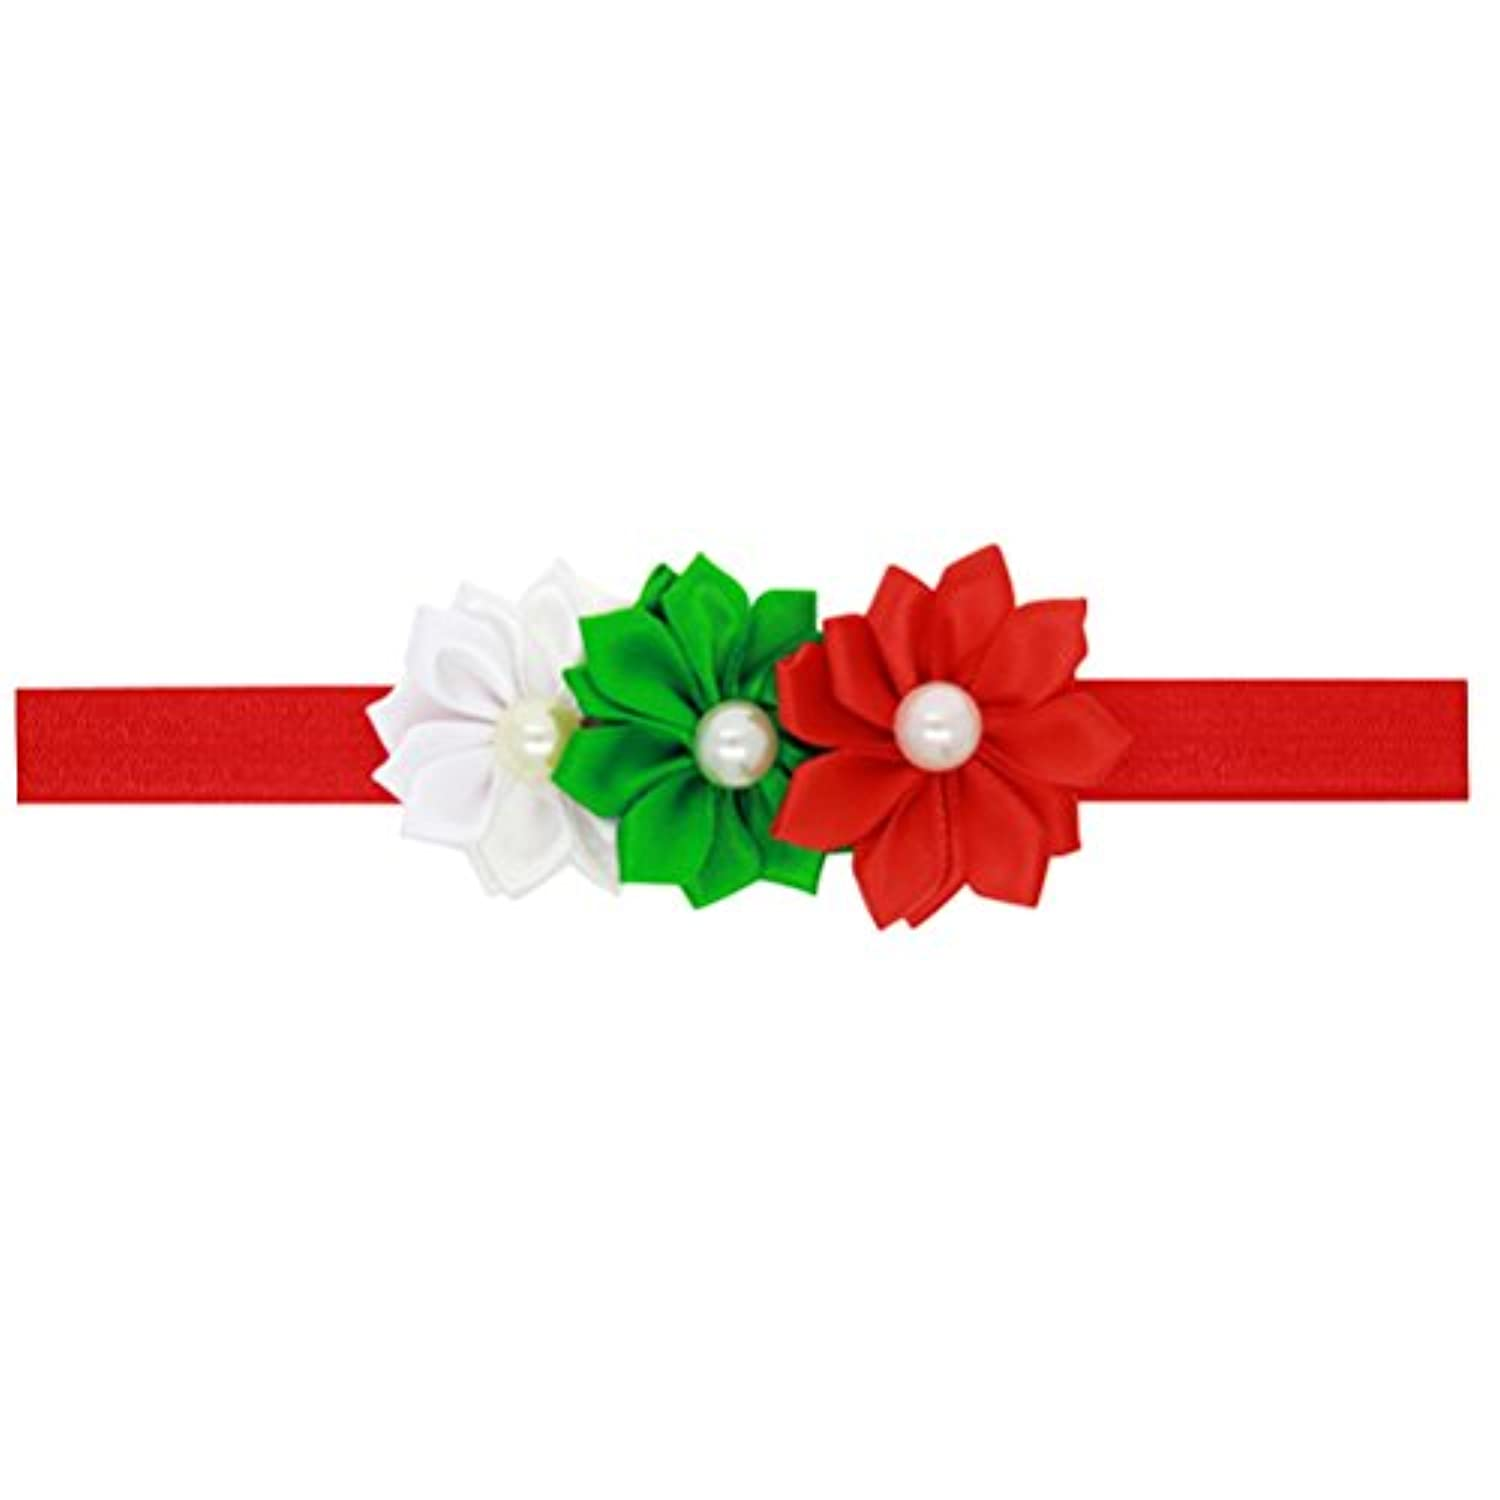 Zhhlinyuan ベビー小物 Kids ヘアアクセサリ Baby Girls Toddler Christmas/Photography Pops/Costume/Party Soft Elastic Flowers Headband Hairband 5129#